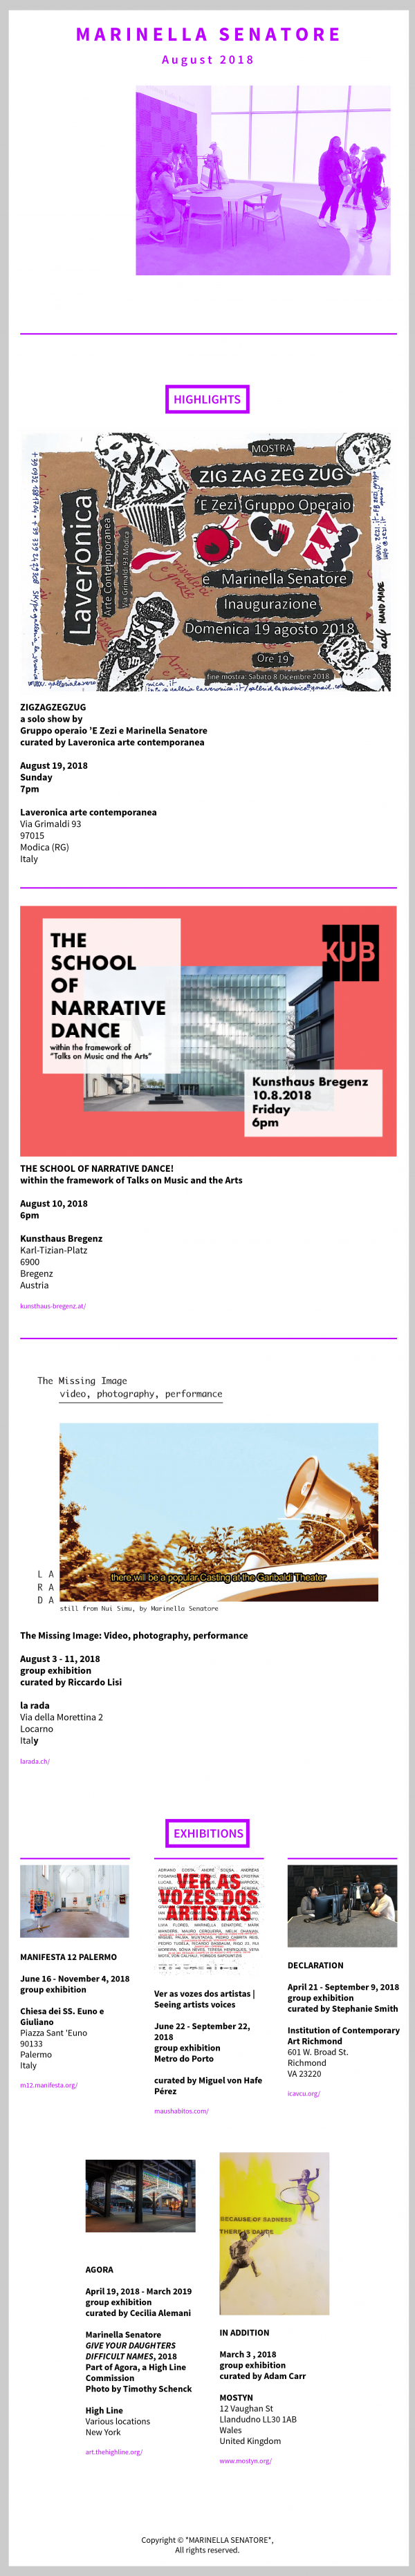 Studio Marinella Senatore Newsletter | August 2018